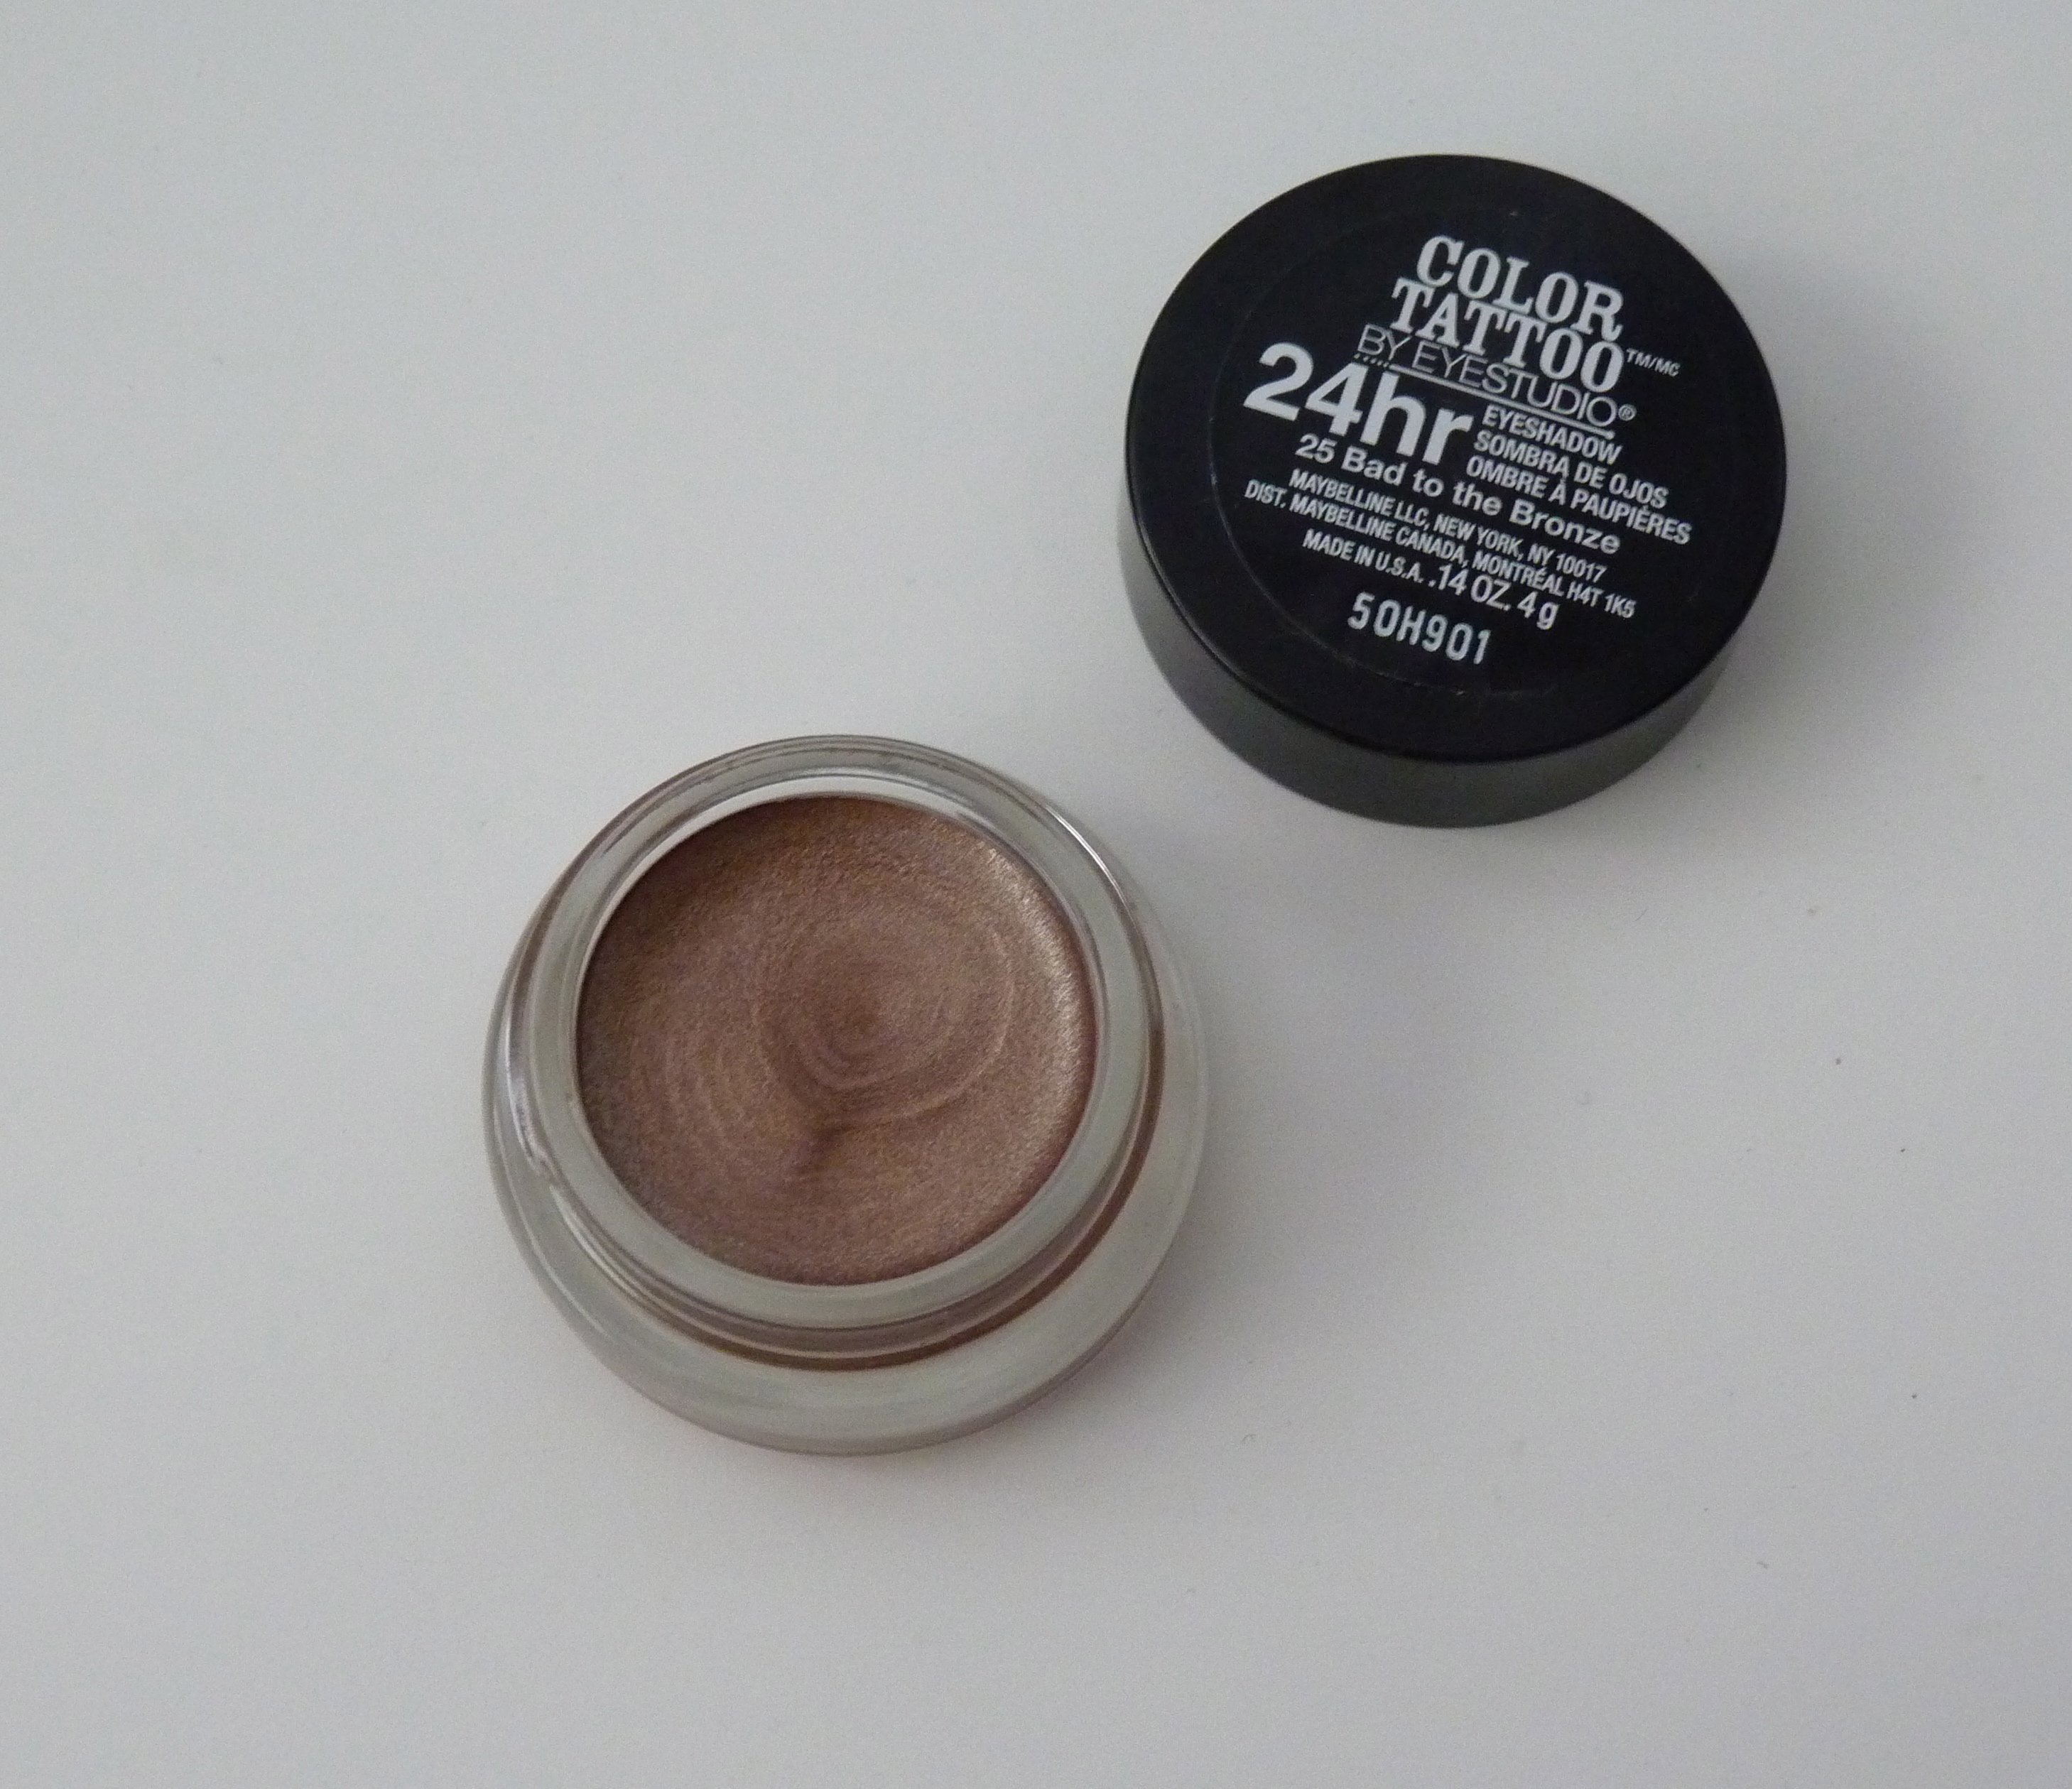 Bad 24 Maybelline Bad To The Bronze 25 Color Tattoo 24 Hour Eyeshadow